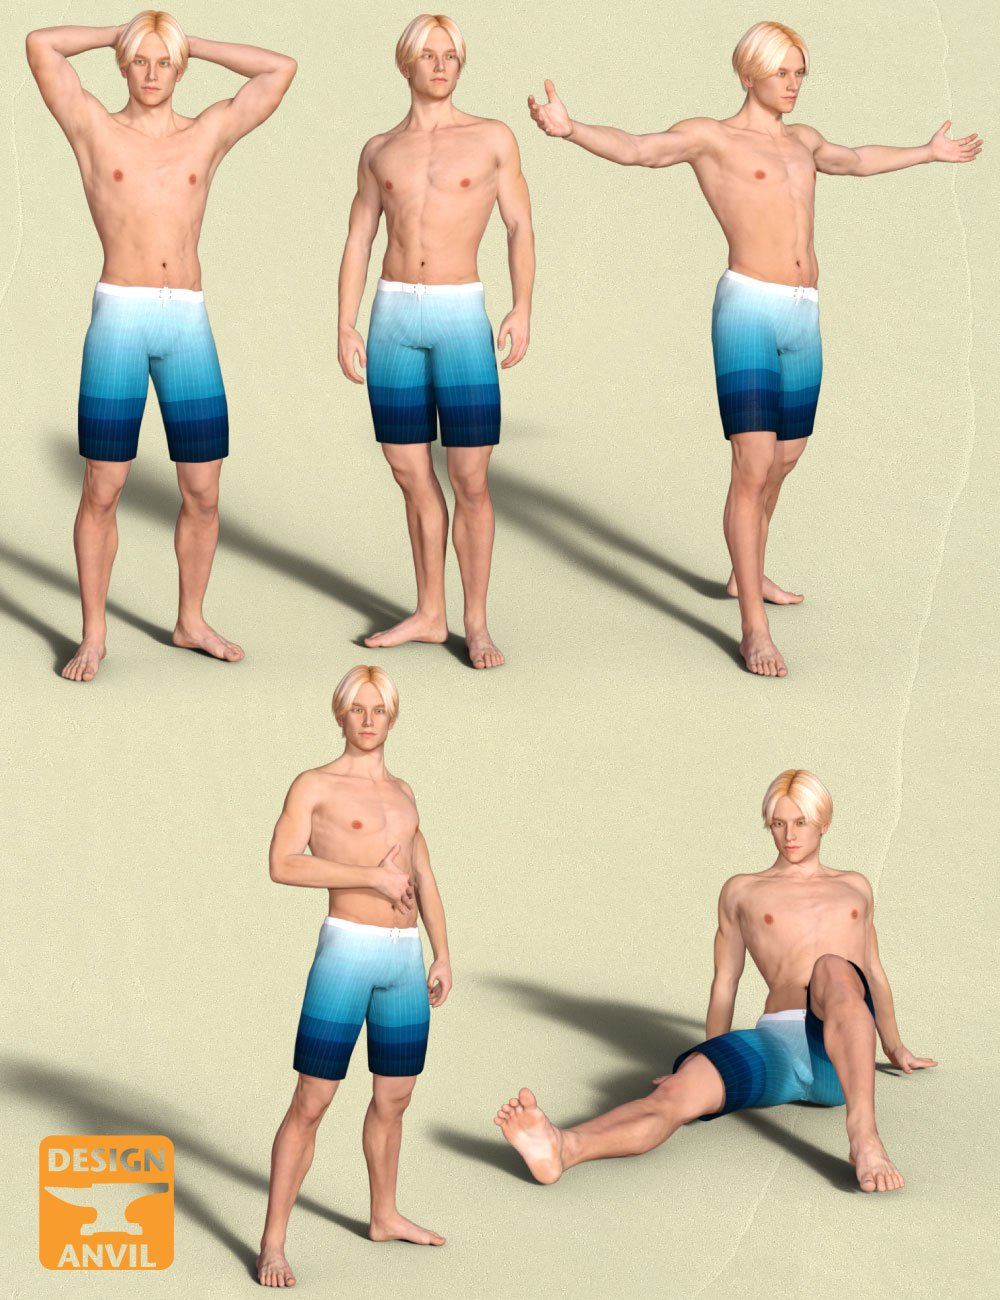 DA Variety Pose Pack for Genesis 3 Male & Michael 7 by: Design Anvil, 3D Models by Daz 3D